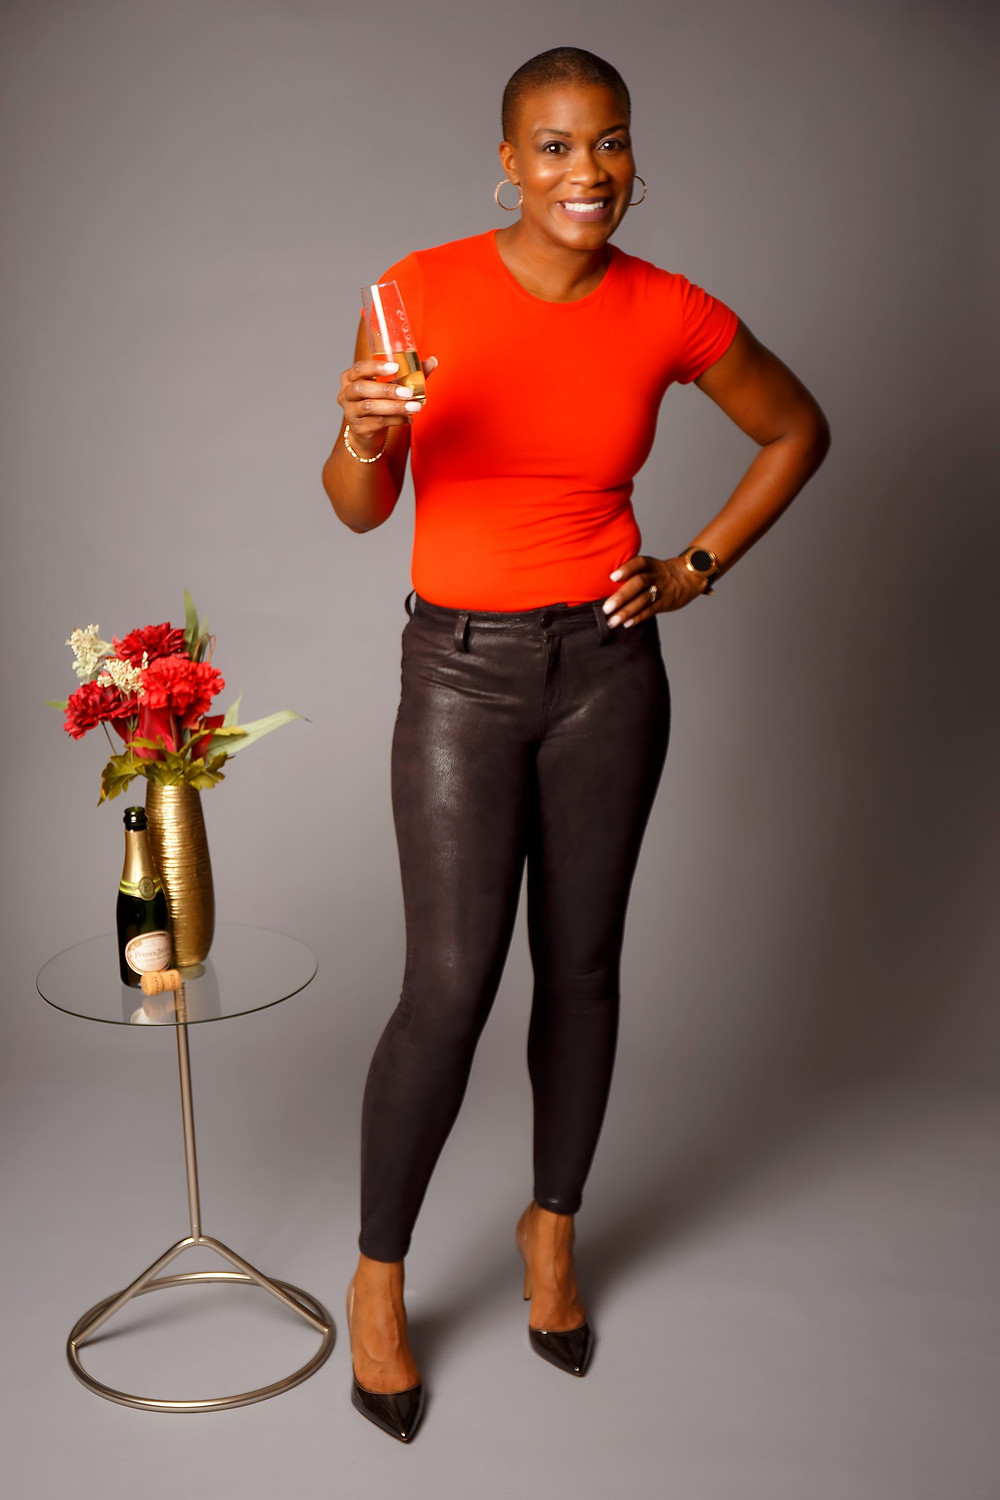 Gwendolyn Houston-Jack celebrating with a glass of champagne